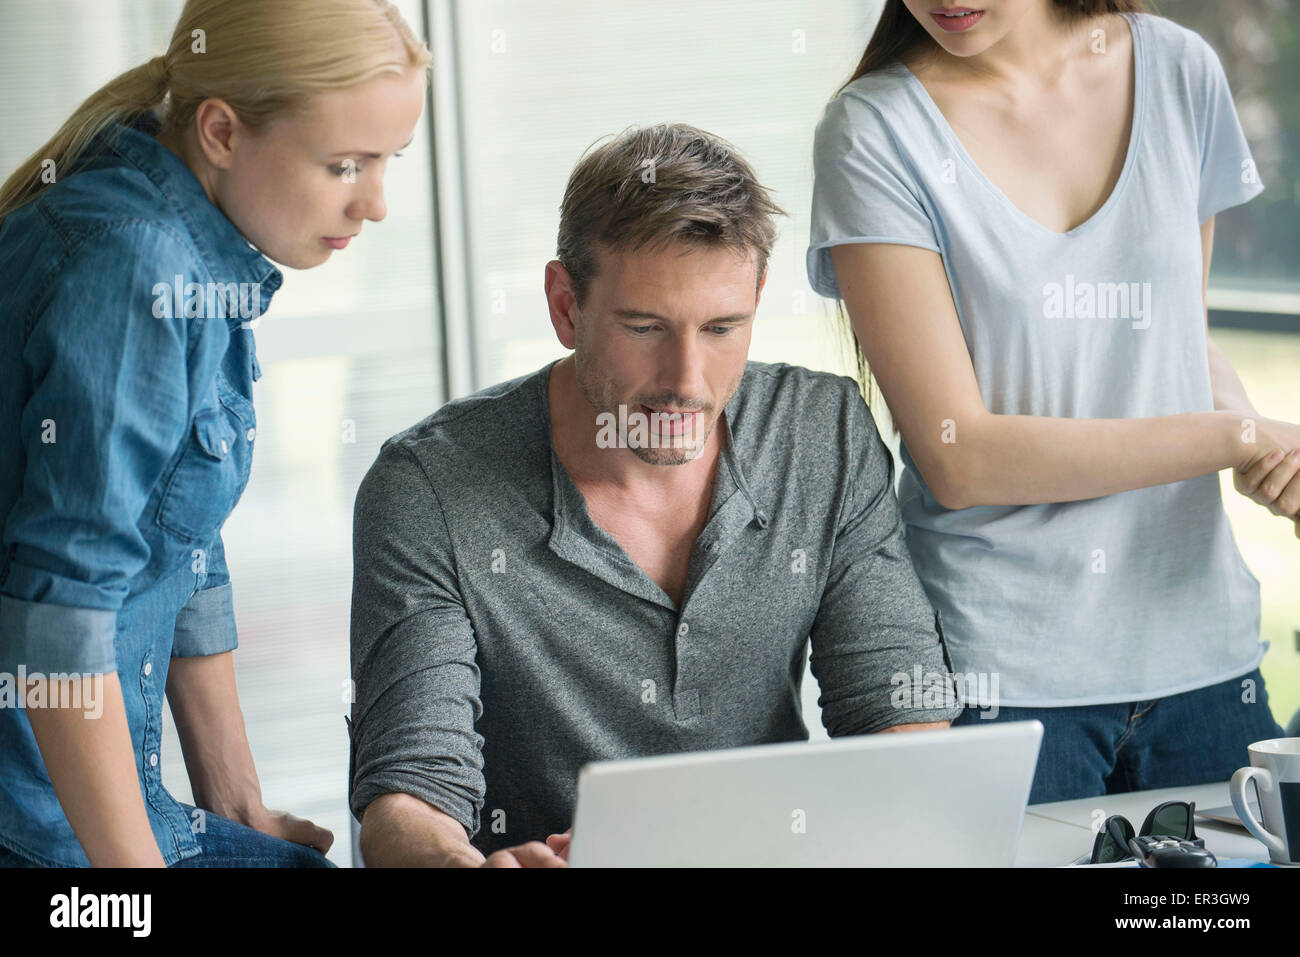 Workers gathered around desk of colleague - Stock Image